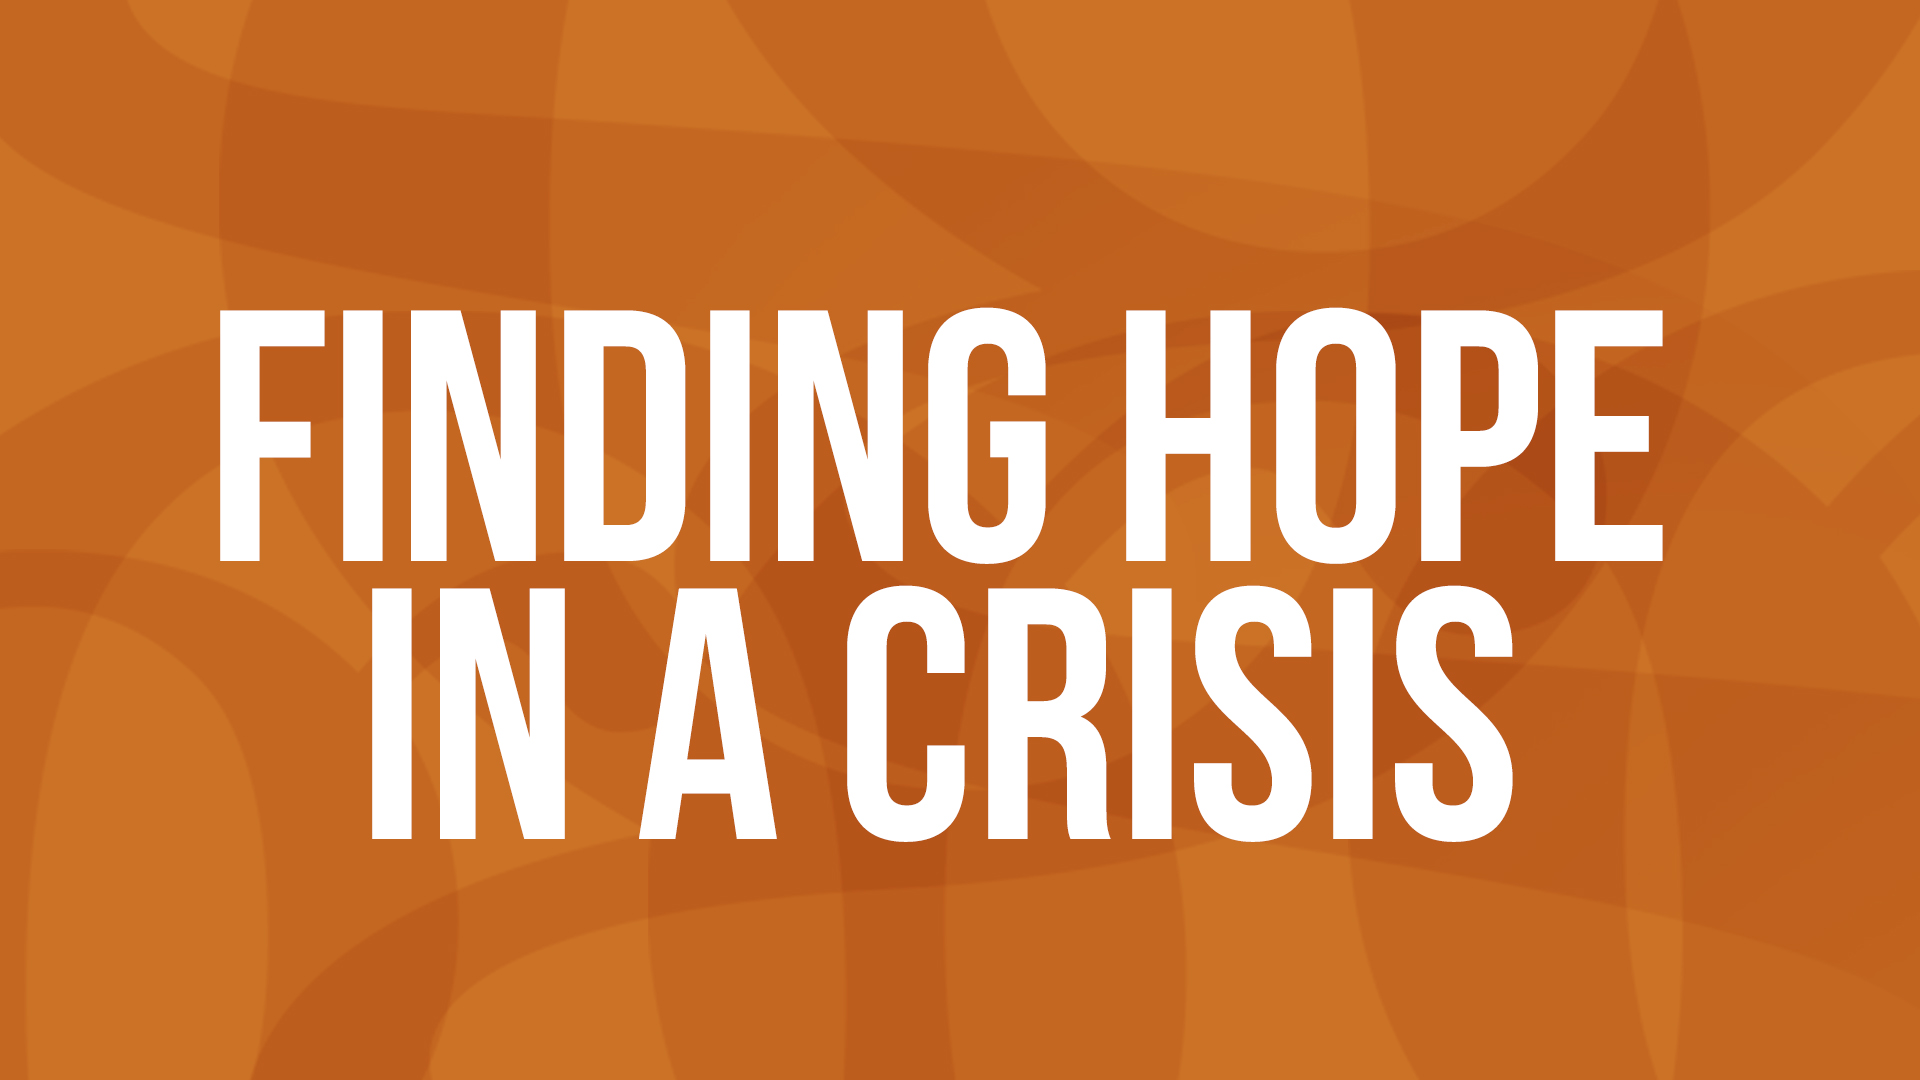 Finding Hope in a Crisis